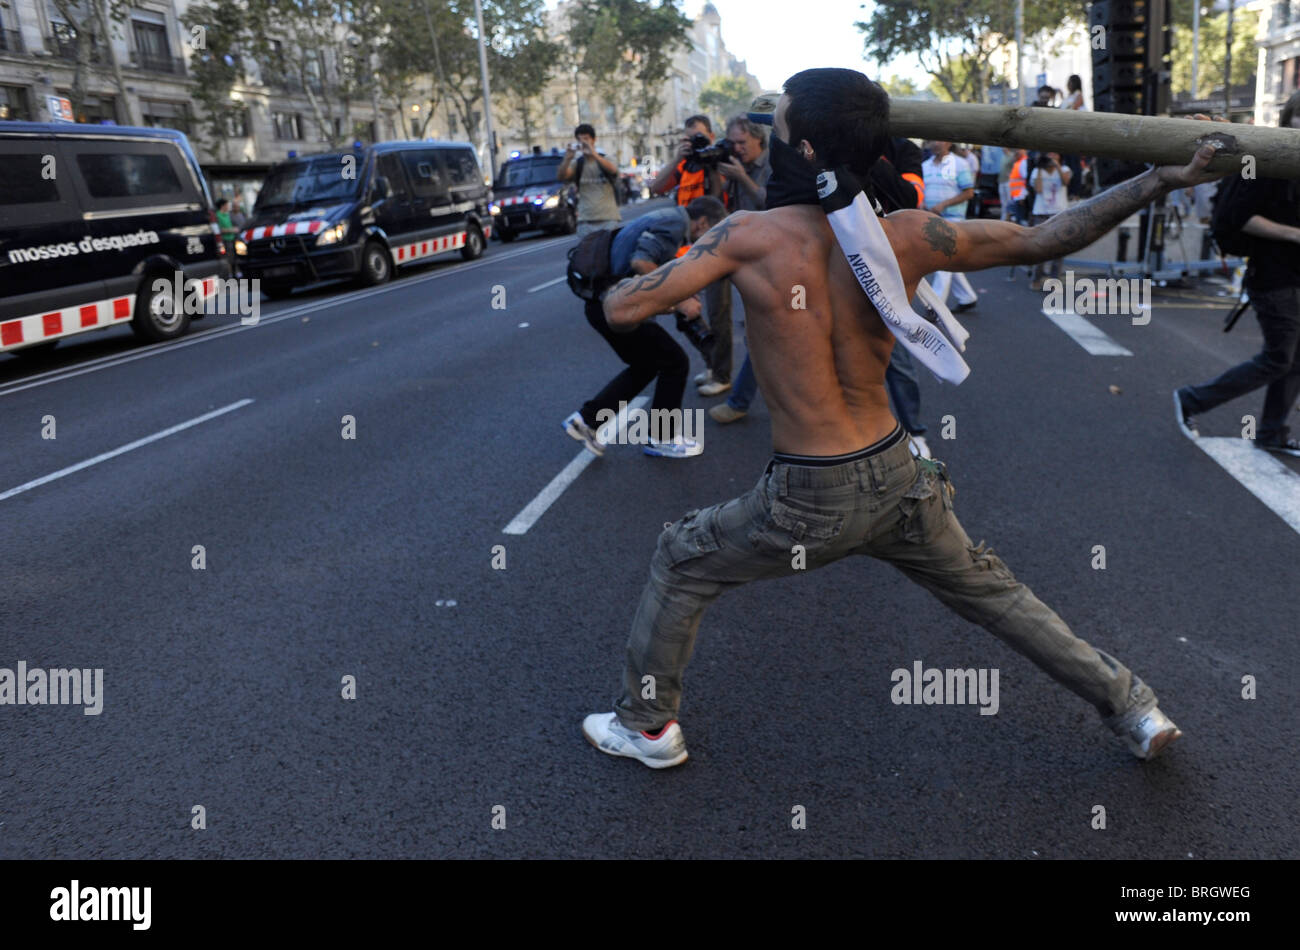 An activist anti system throws a stake against the police vans during during clashes in the general strike in Barcelona. - Stock Image